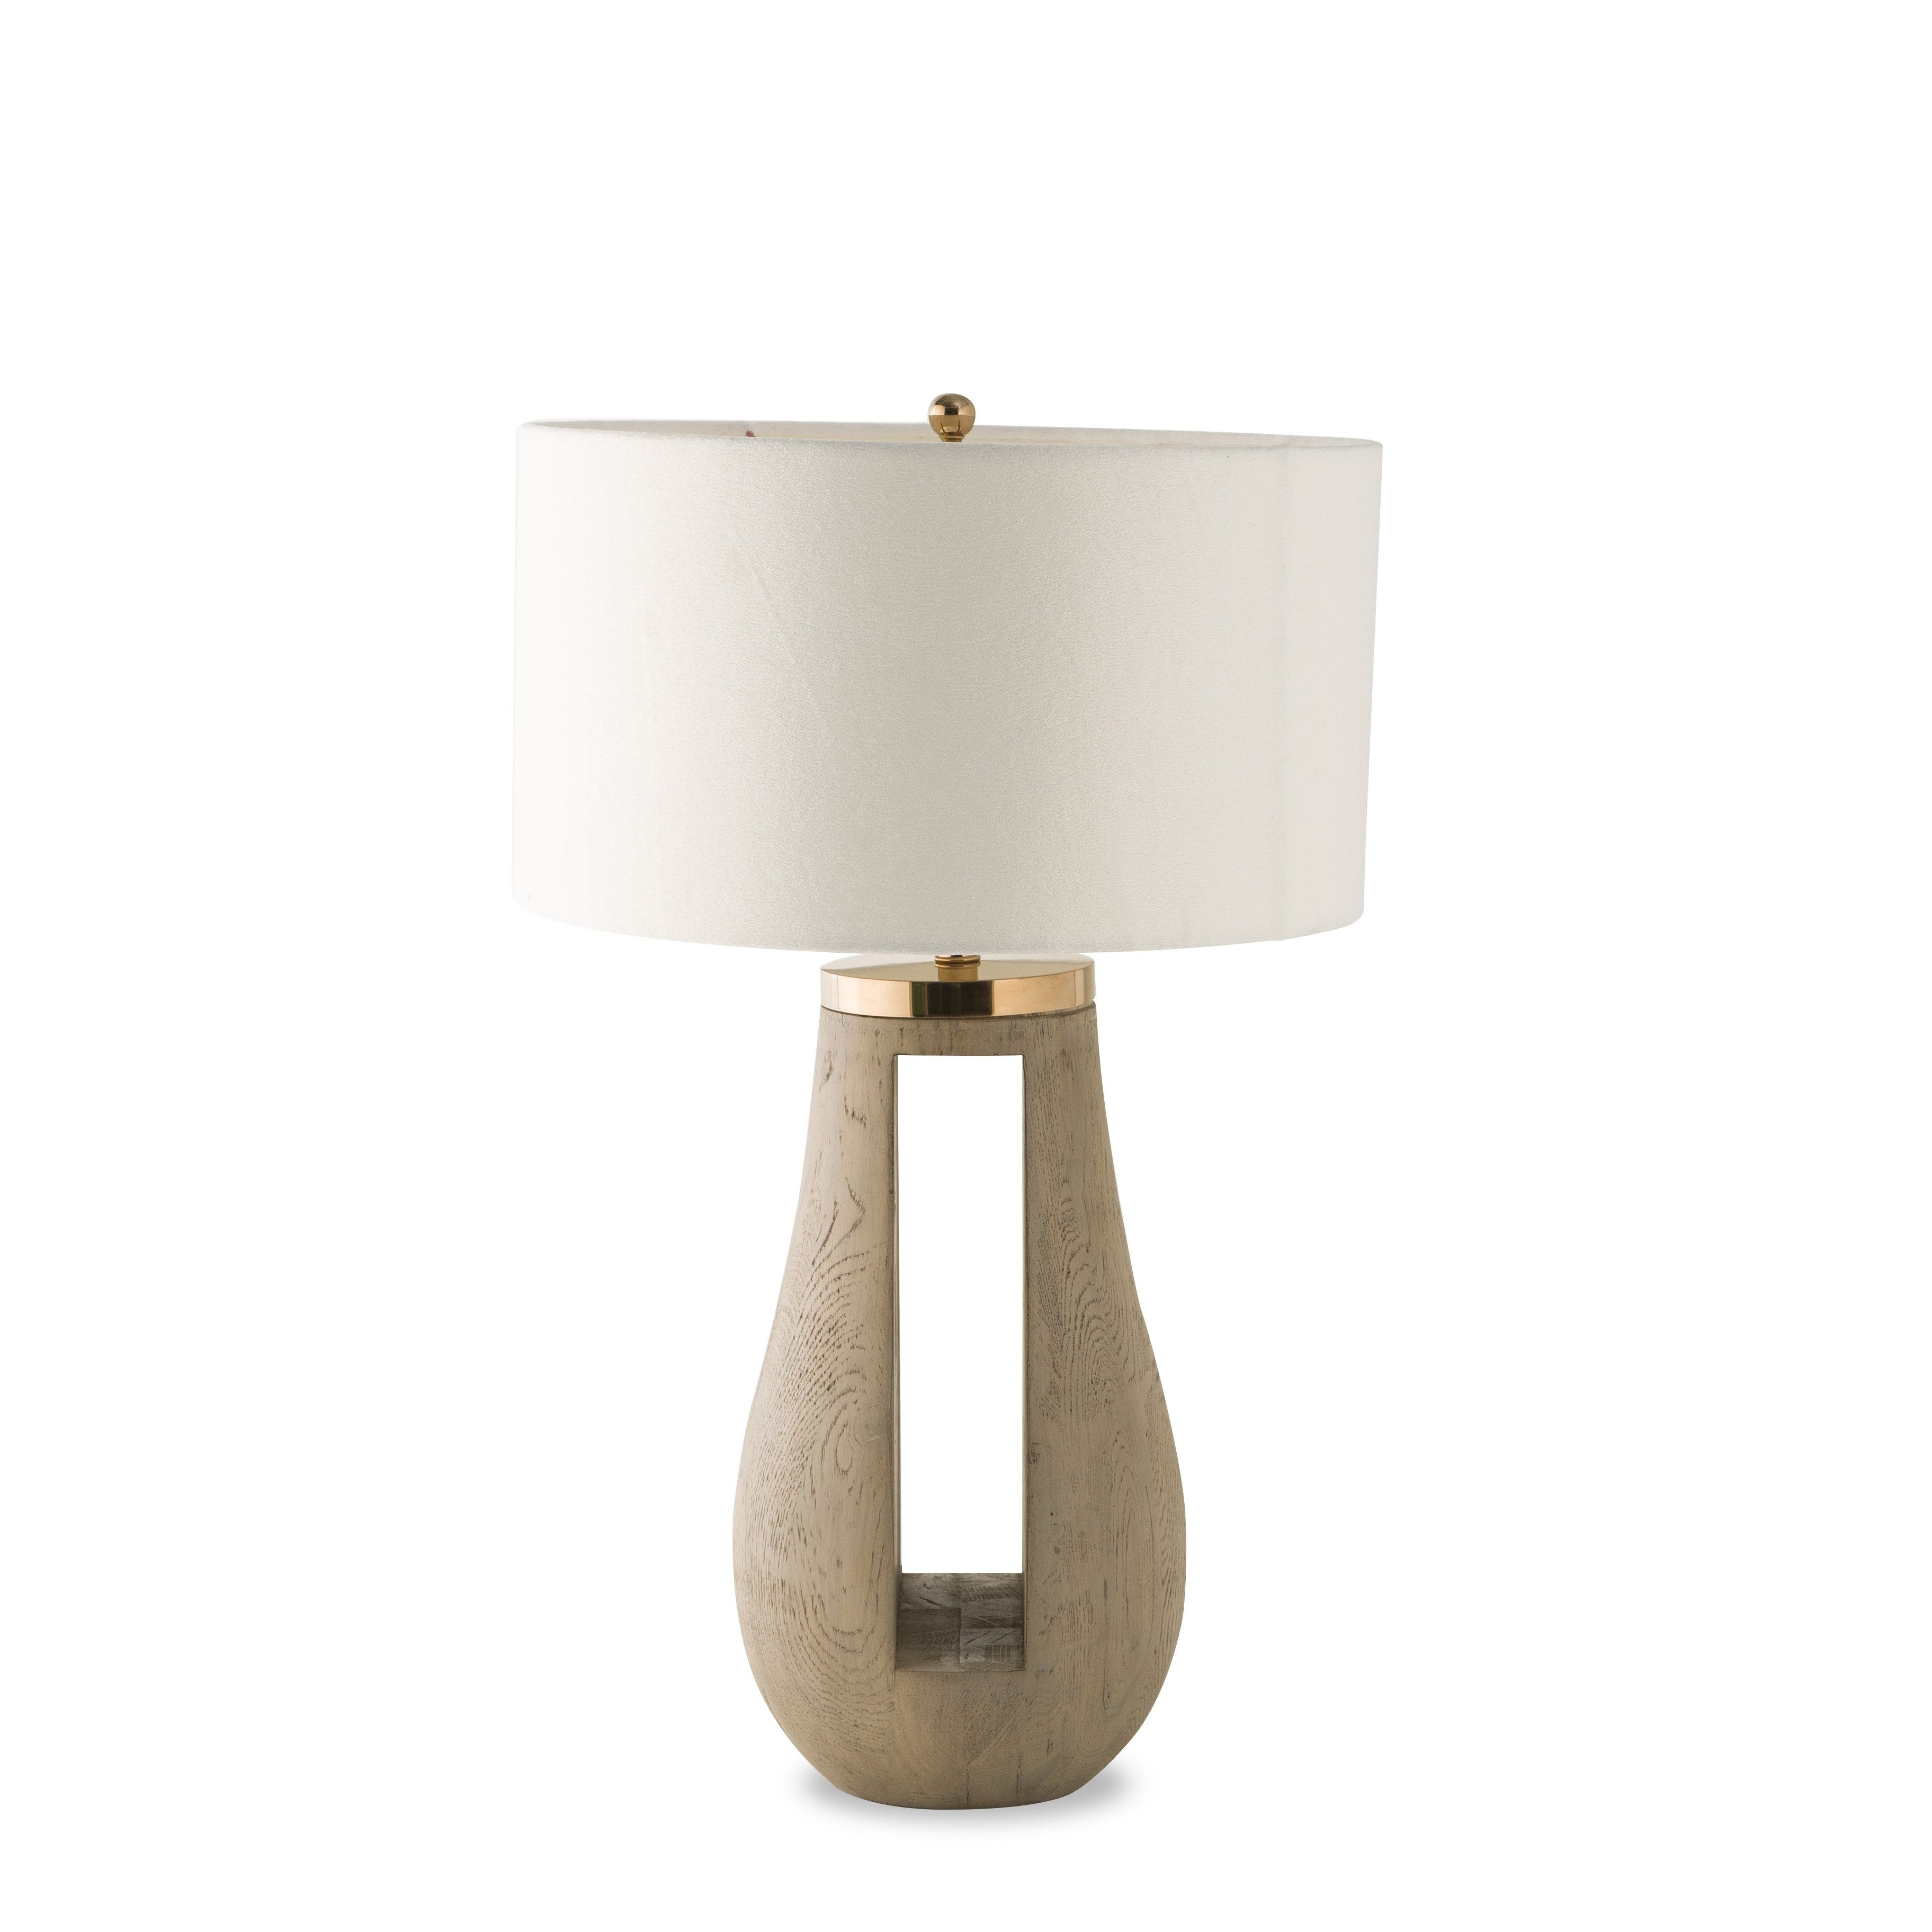 lulu kelly hoppen gray table lamp marina rustic accent lamps our features the unique combination wood and glamorous gold with modern cutout down middle elegant piece for living